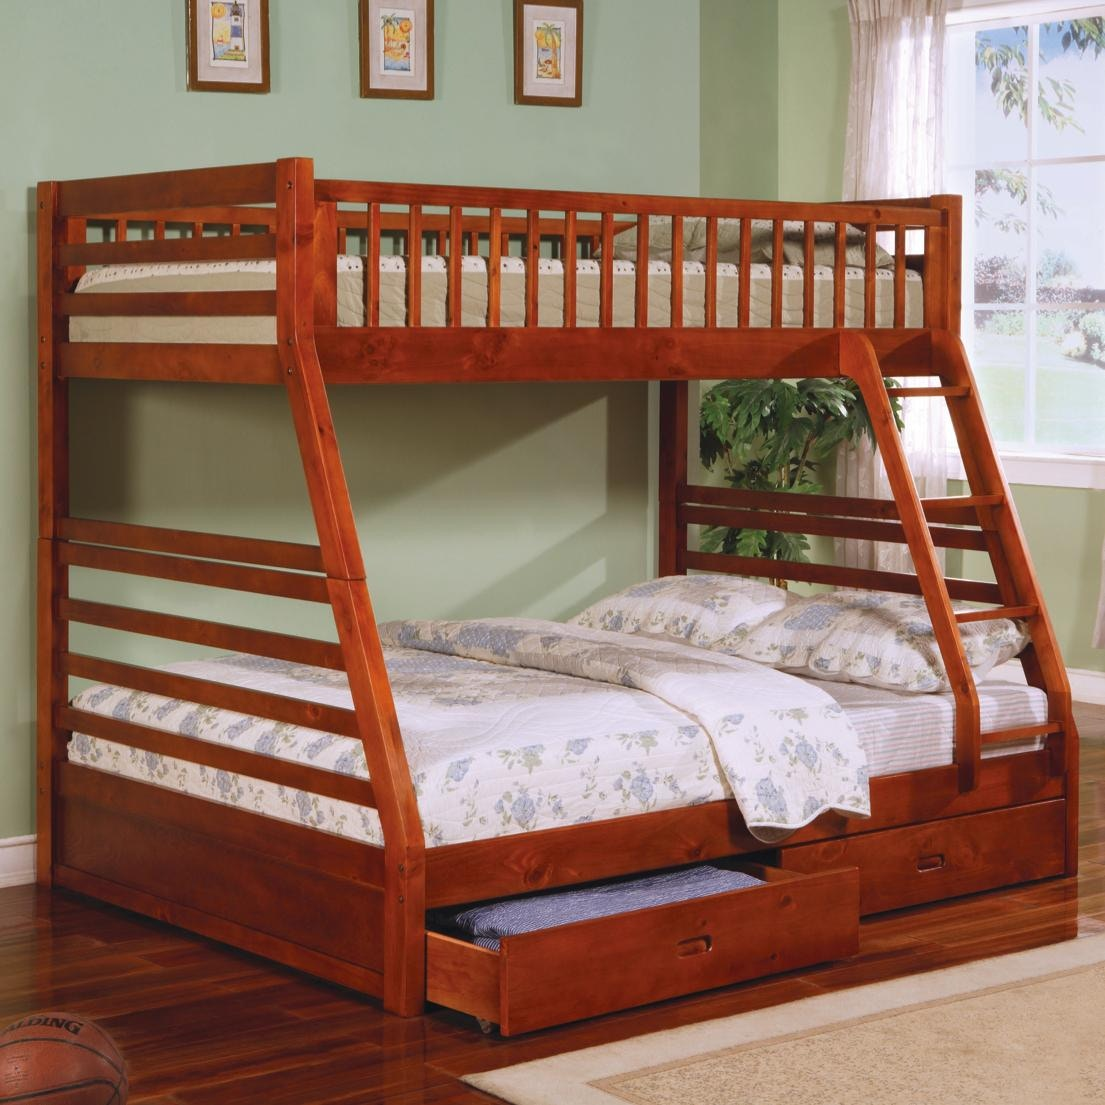 Coaster Youth Bunk Bed 460183 Davis Furniture Poughkeepsie Ny